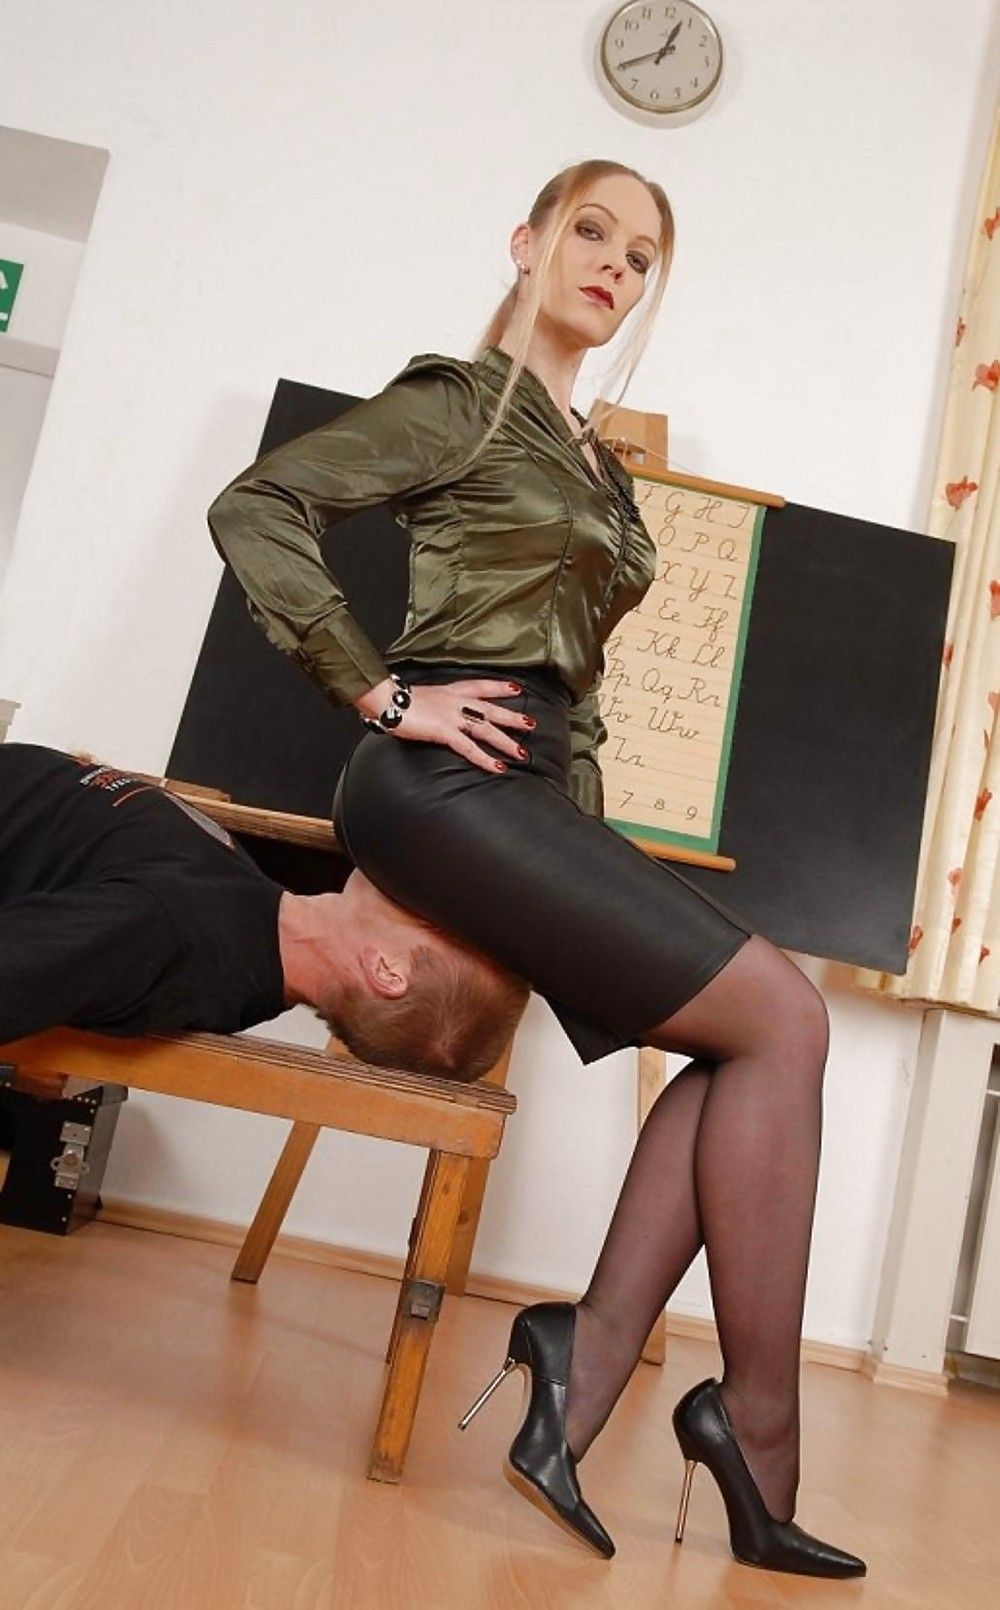 Granny teacher flirts with her student - 3 part 4